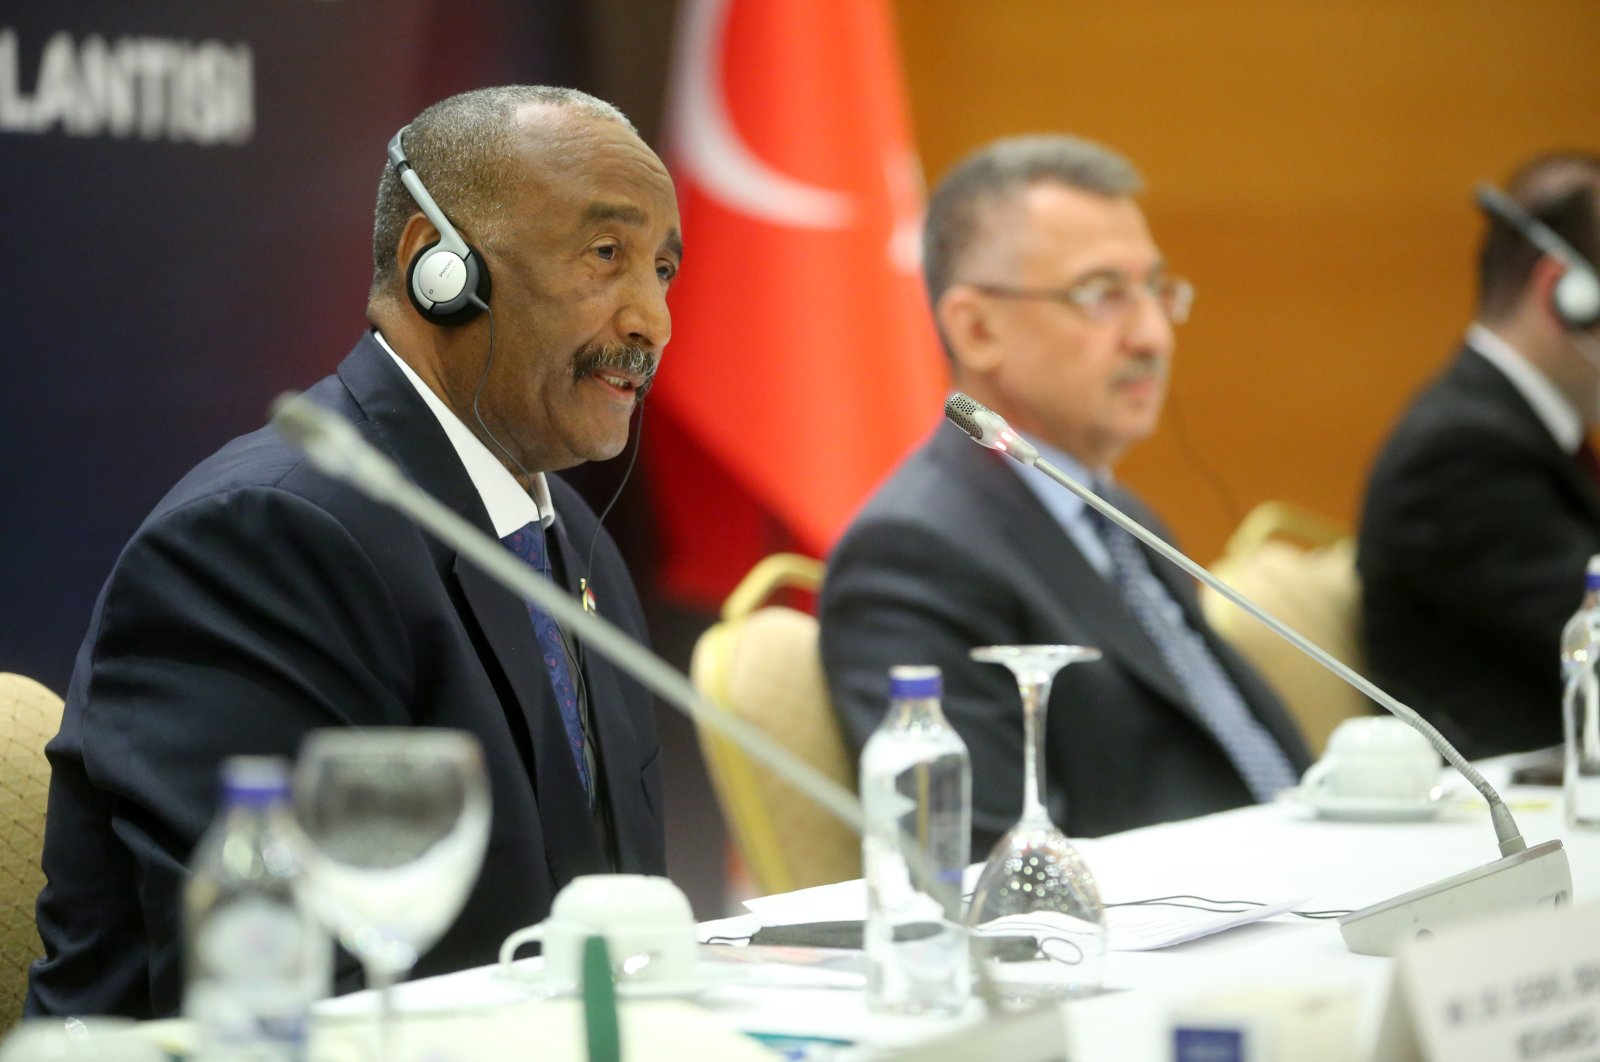 Abdel Fattah al-Burhan (L), the chairperson of Sudan's Sovereign Council and Vice President Fuat Oktay (R) during a meeting with businesspeople in Ankara, Aug. 13, 2021 (AA Photo)